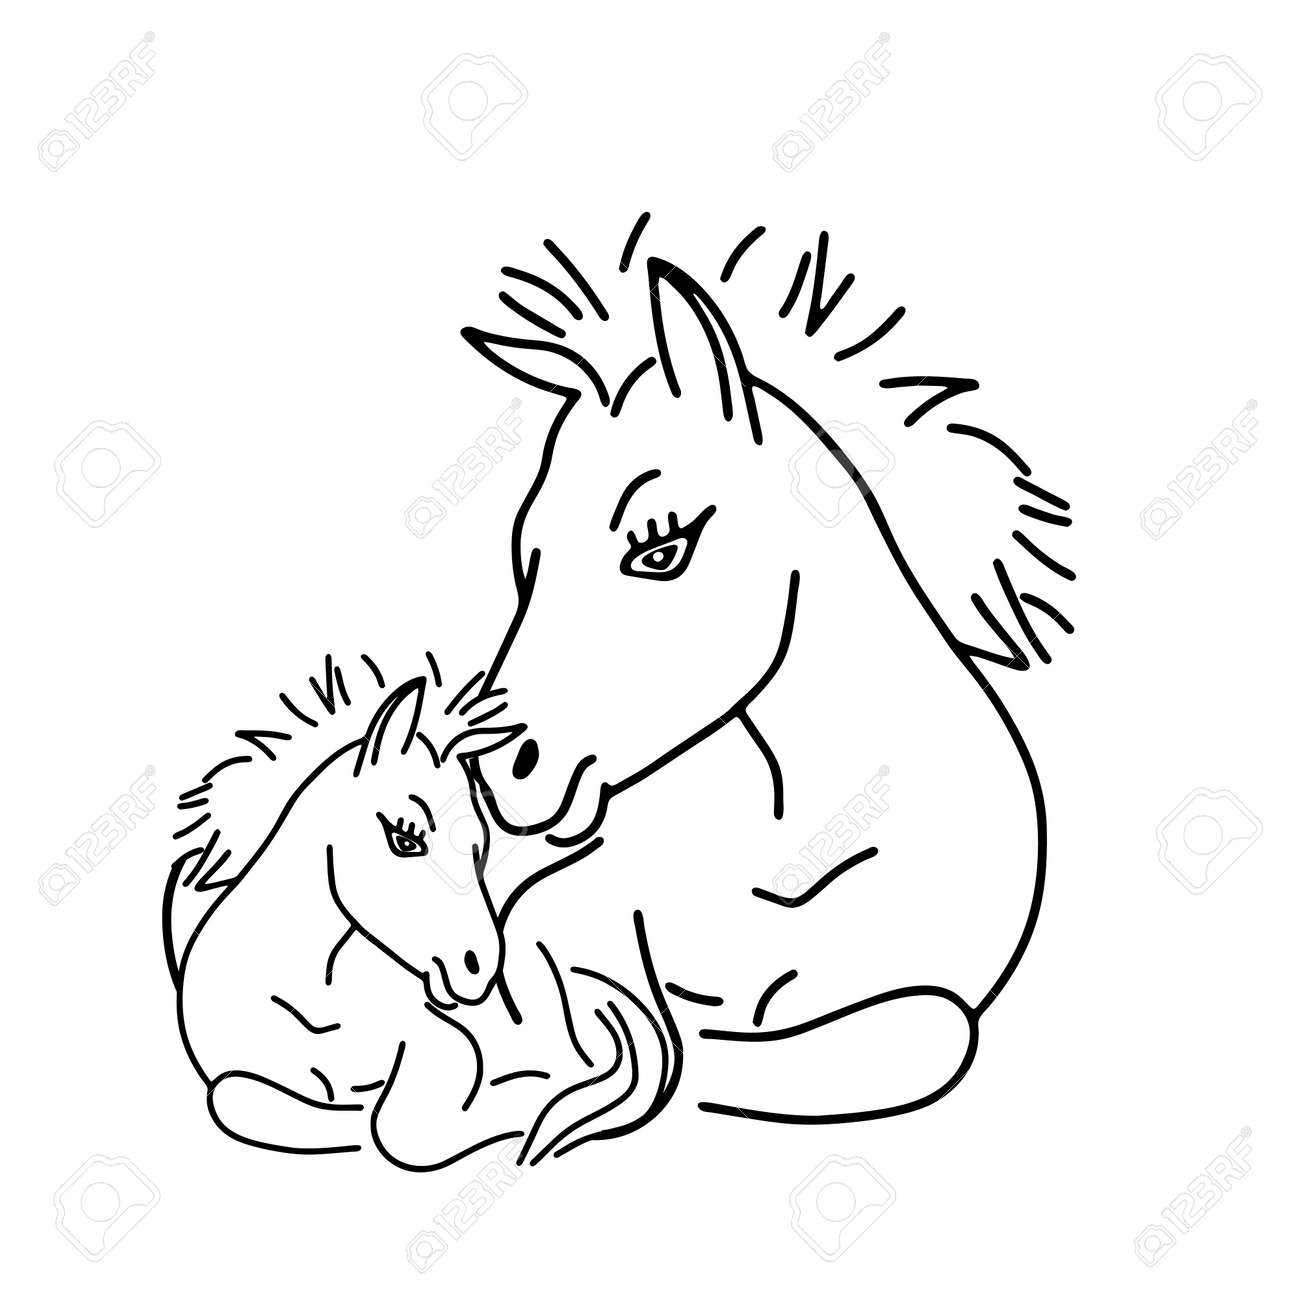 A Black outline hand drawing vector illustration of a horse and a baby horse lying on a grass isolated on a white background - 170194715